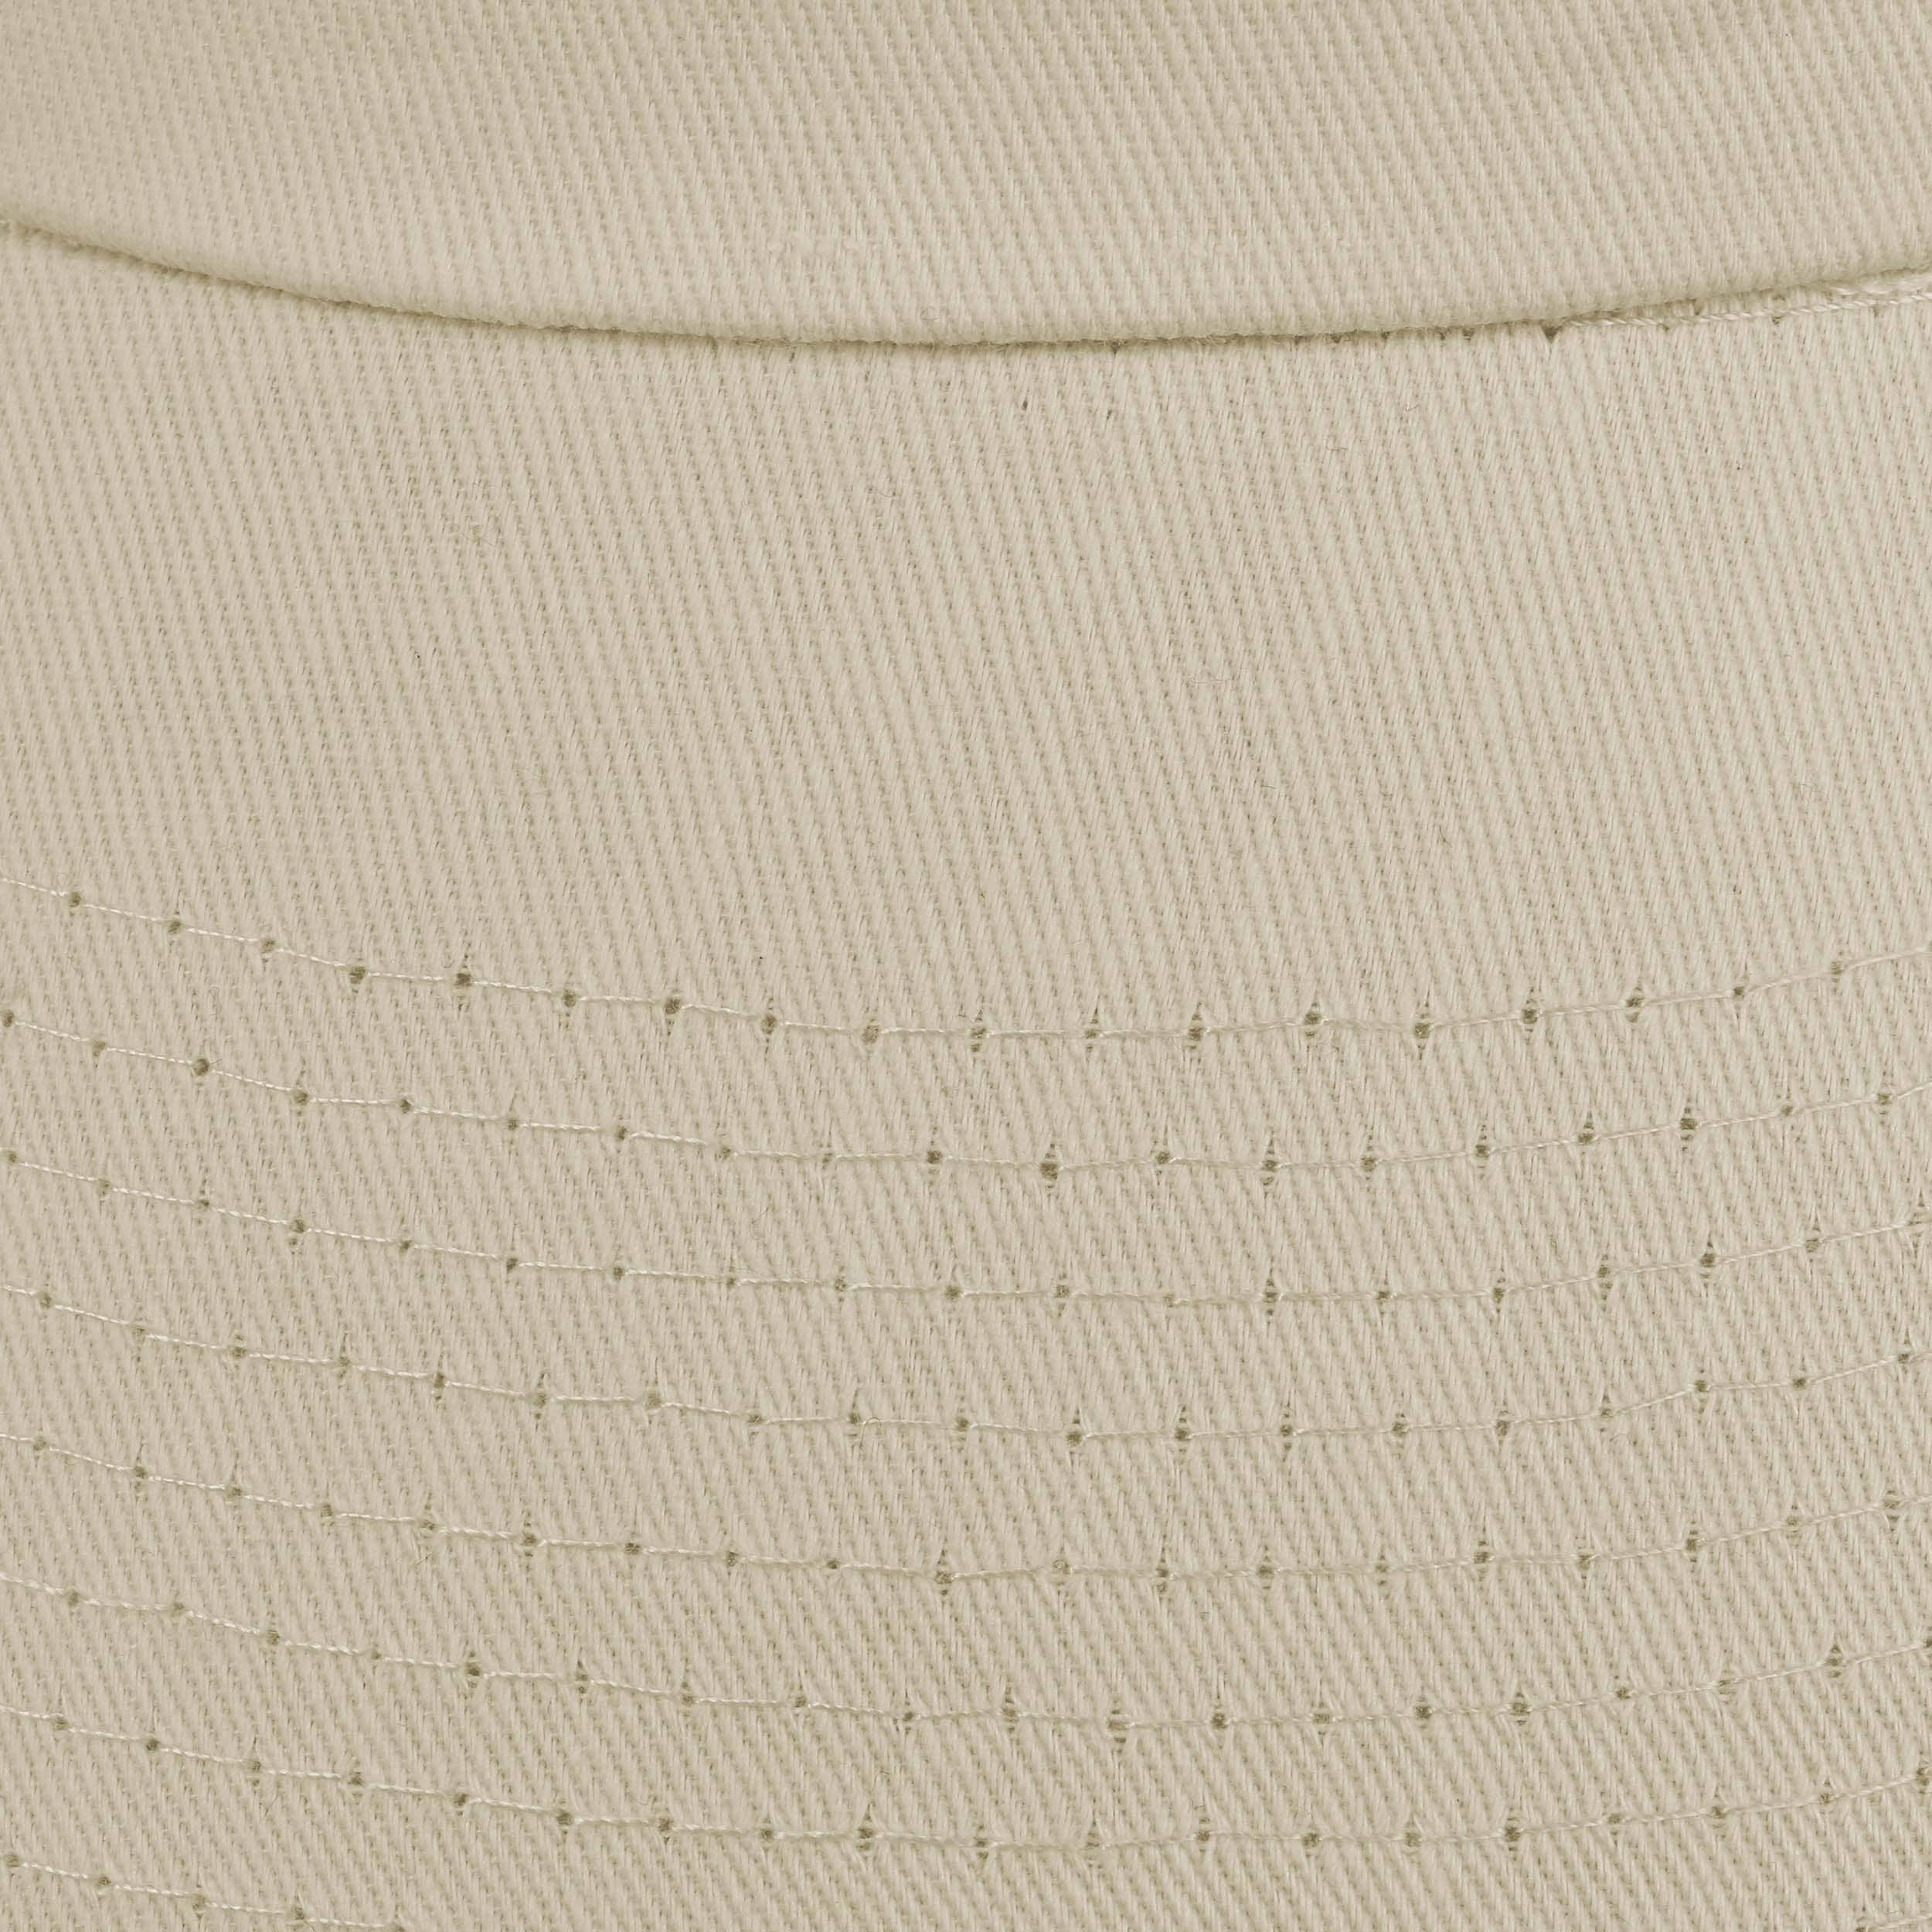 d4dba8d8b7bf10 ... 5 · Sunshine Cap by Seeberger - cream white 4 ...